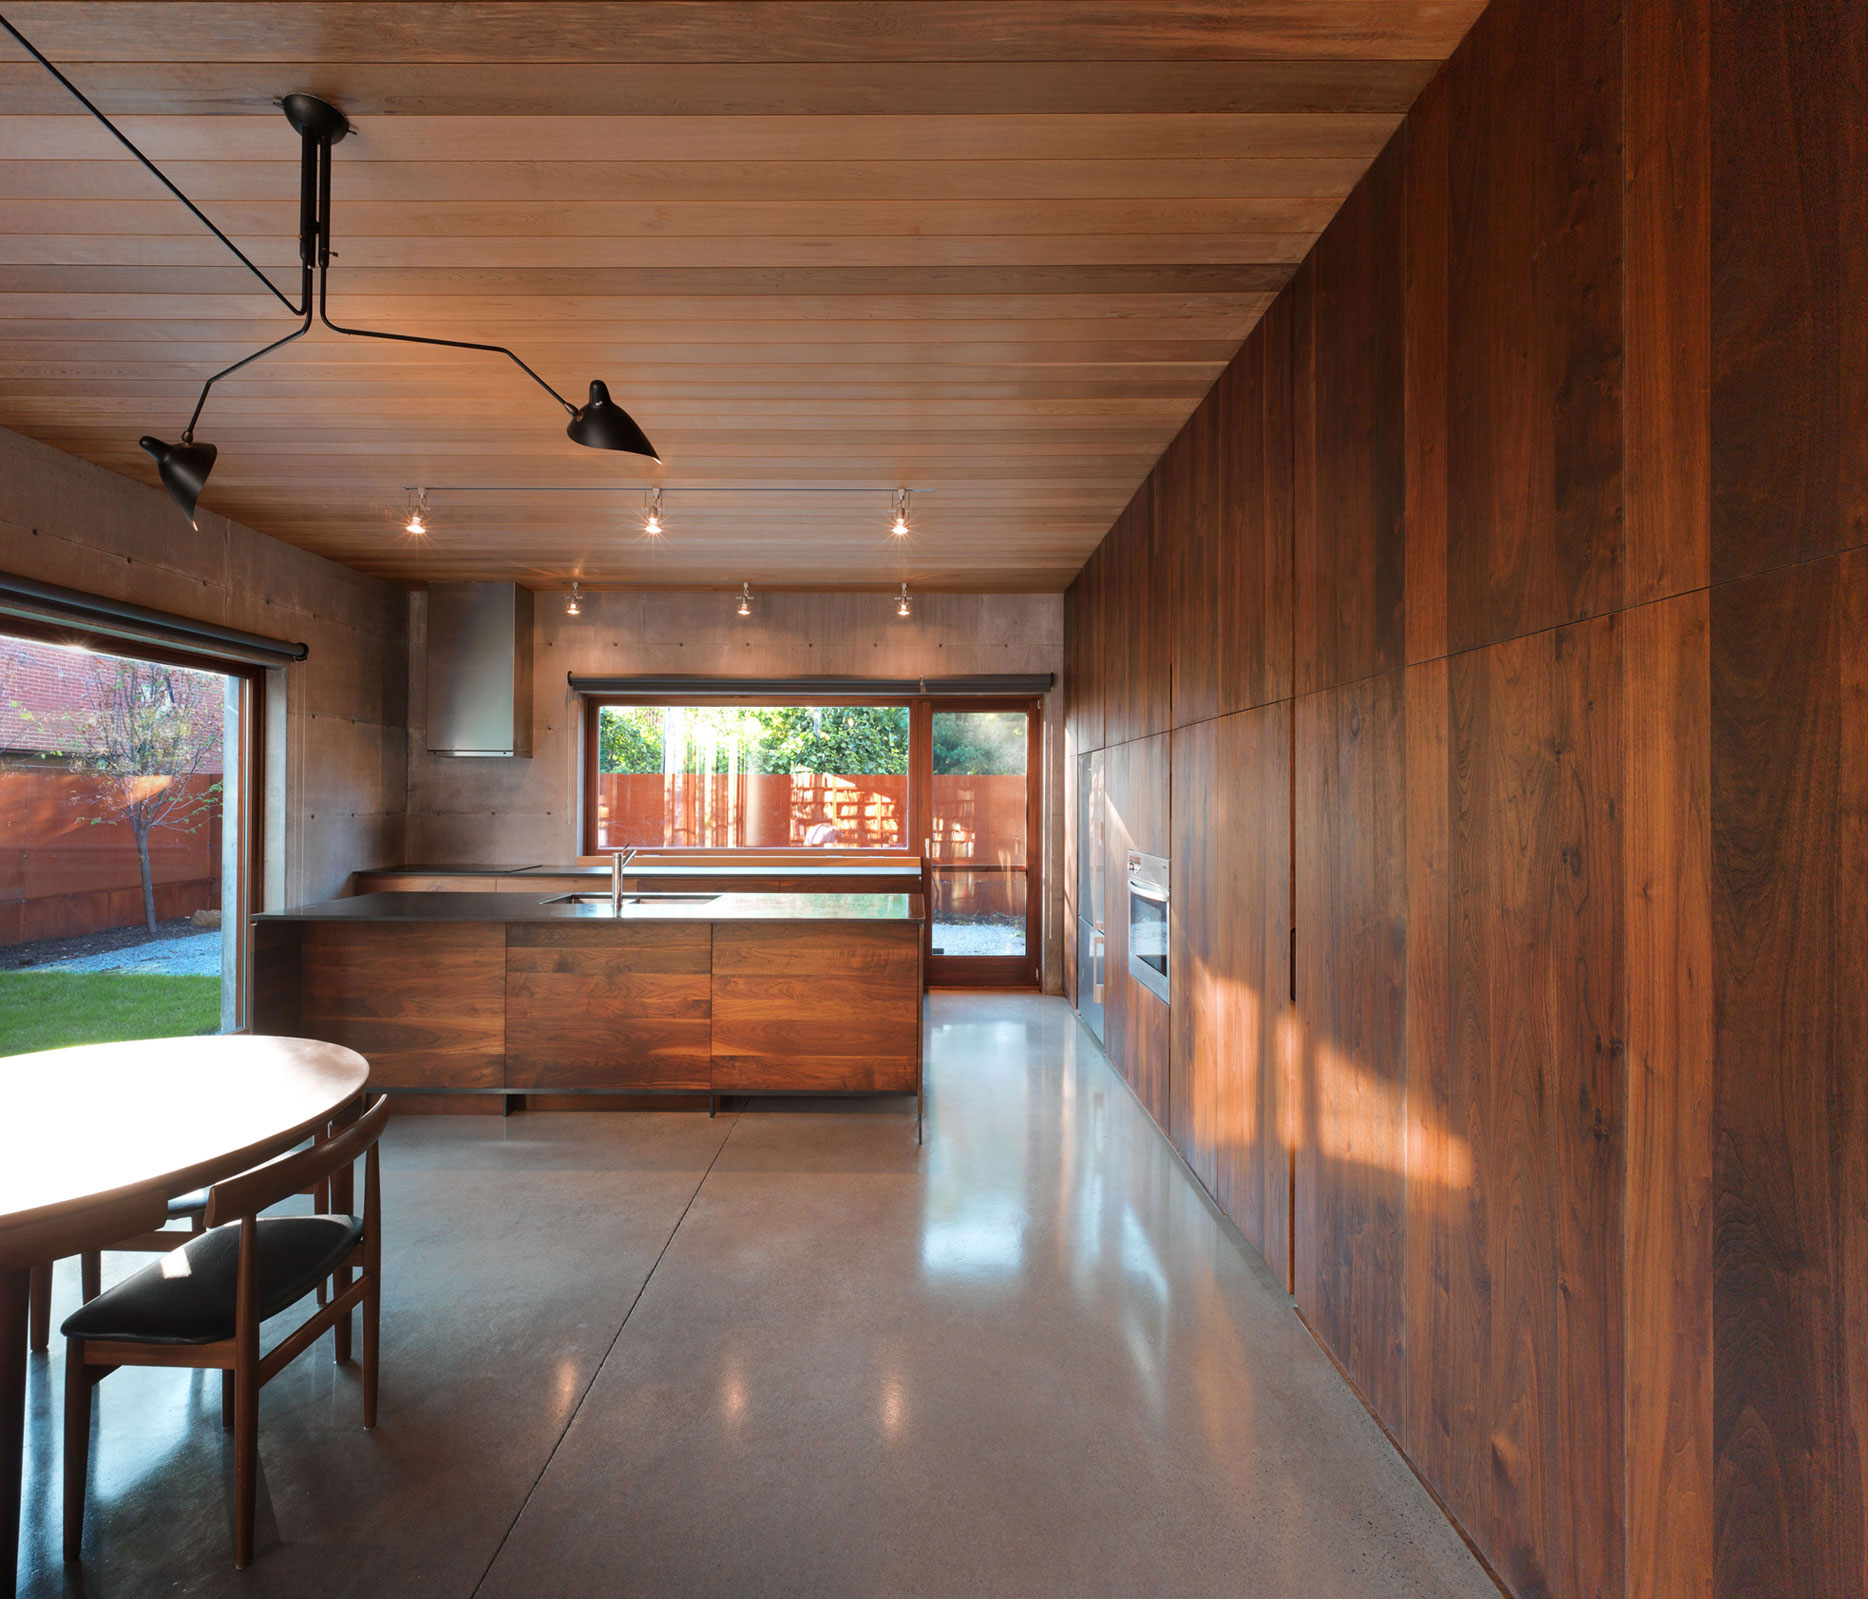 wood theme as an interior design